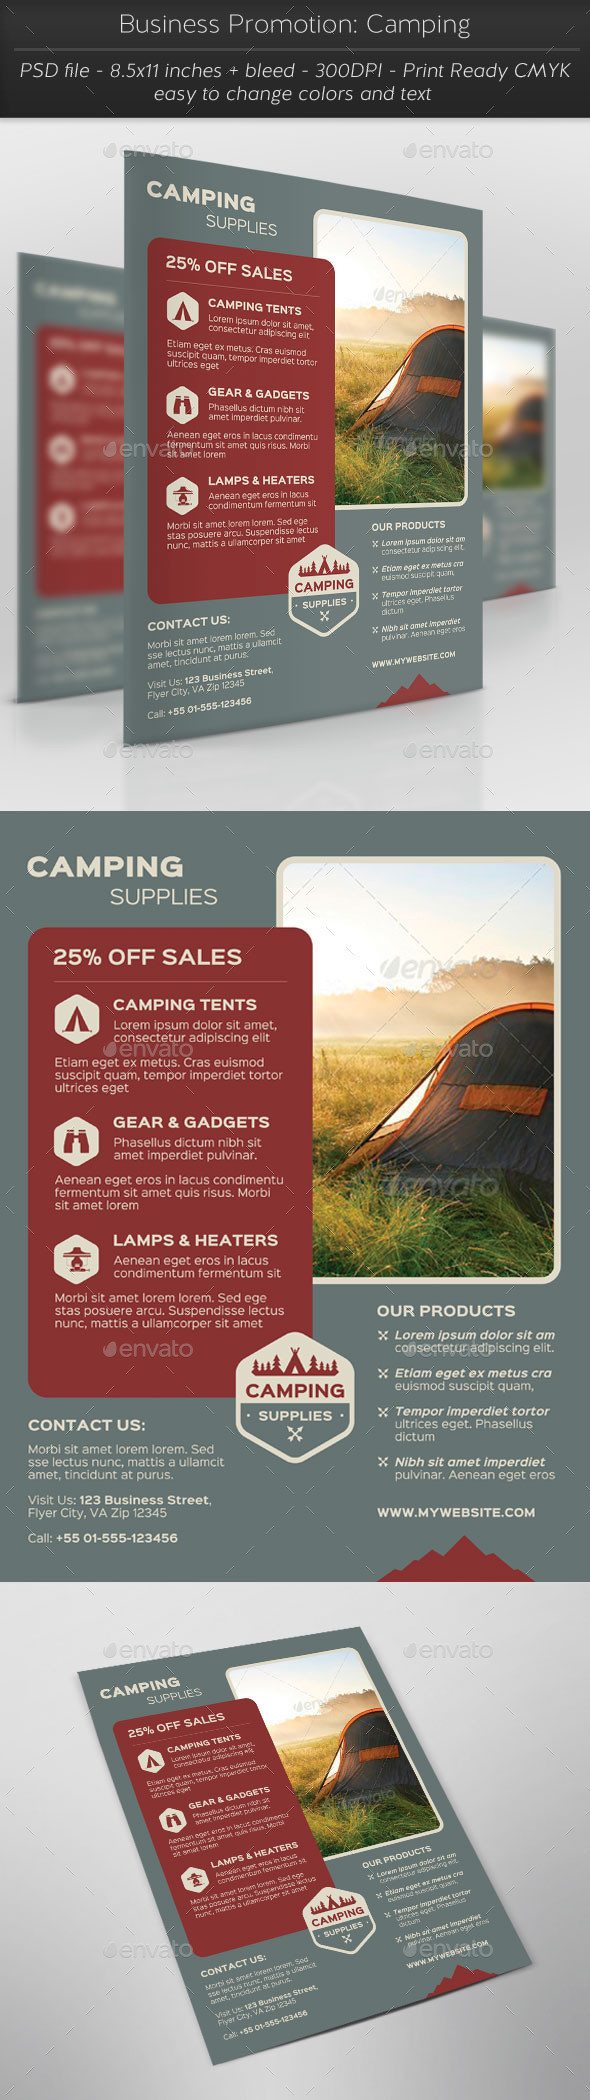 Business Promotion Camping